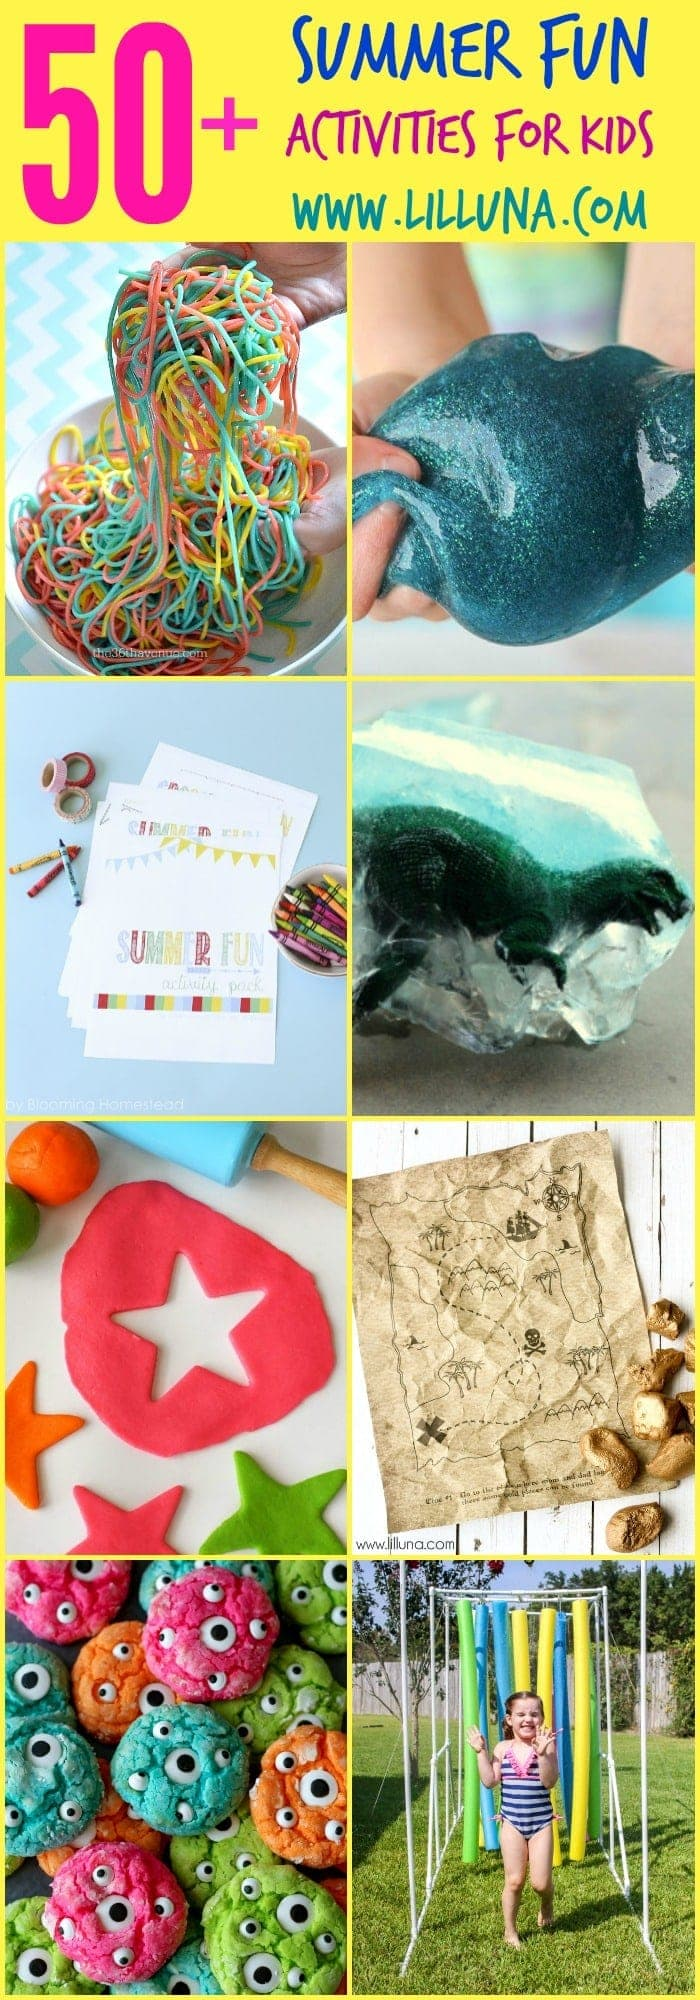 50+ Fun, inexpensive and easy kids activities to do this summer!